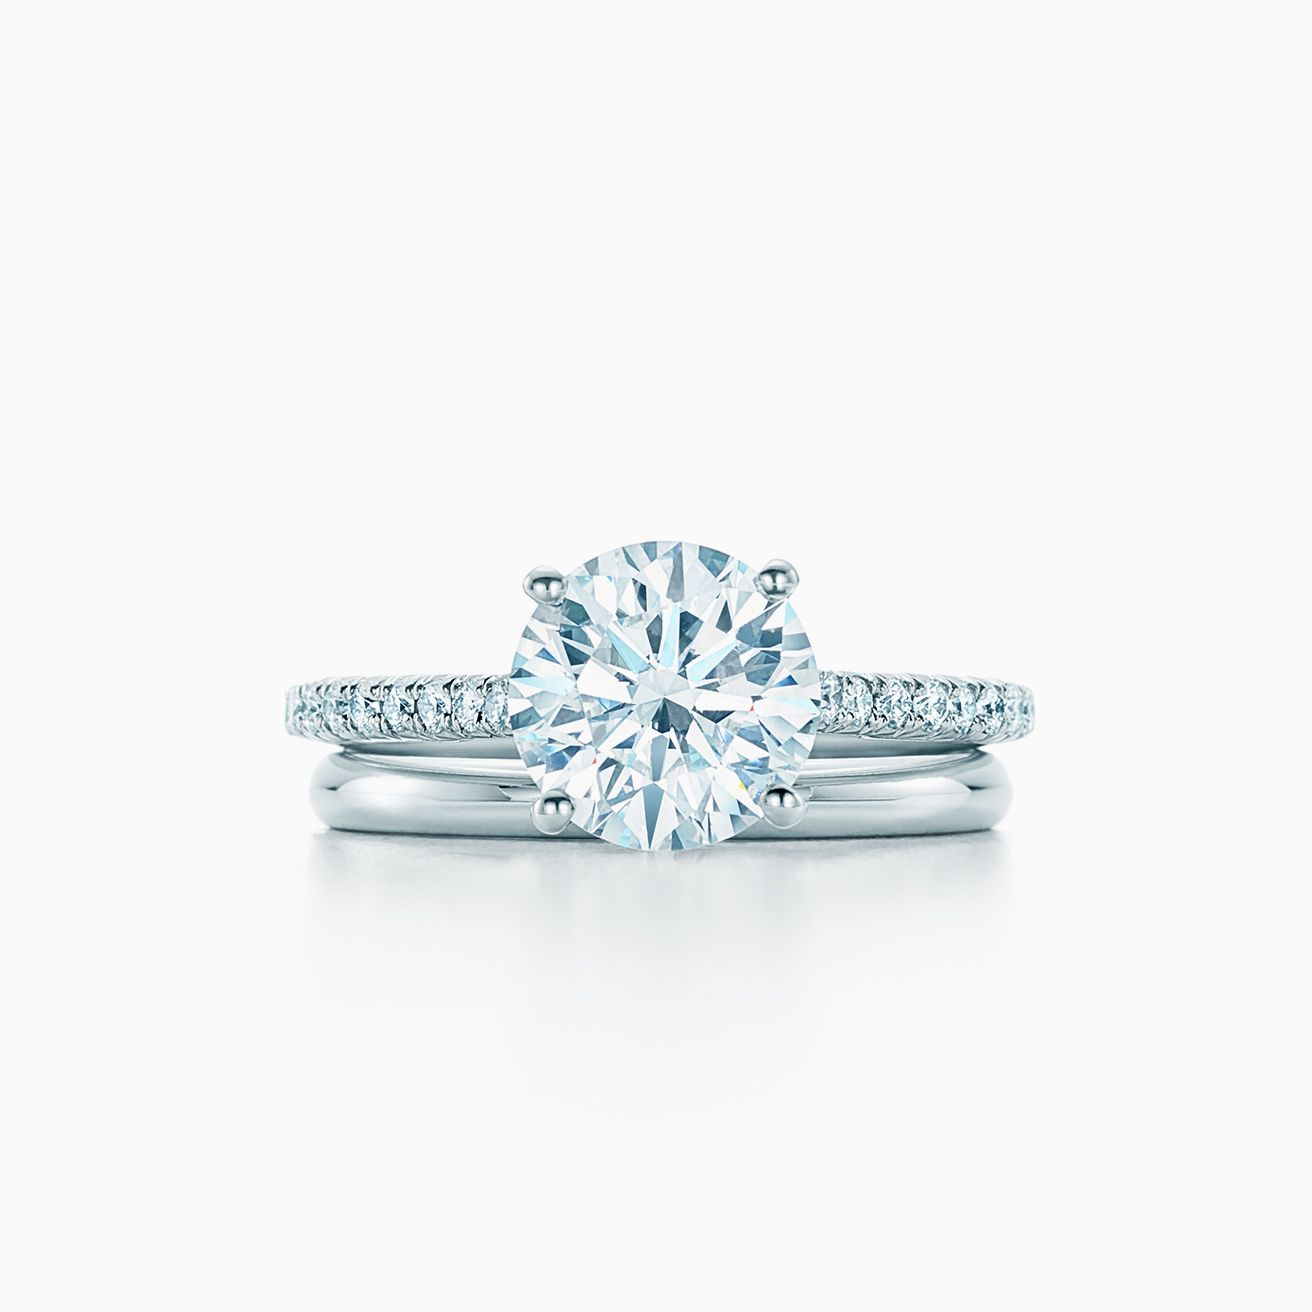 Tiffany Novo 174 Round Brilliant Engagement Ring With A Pav 233